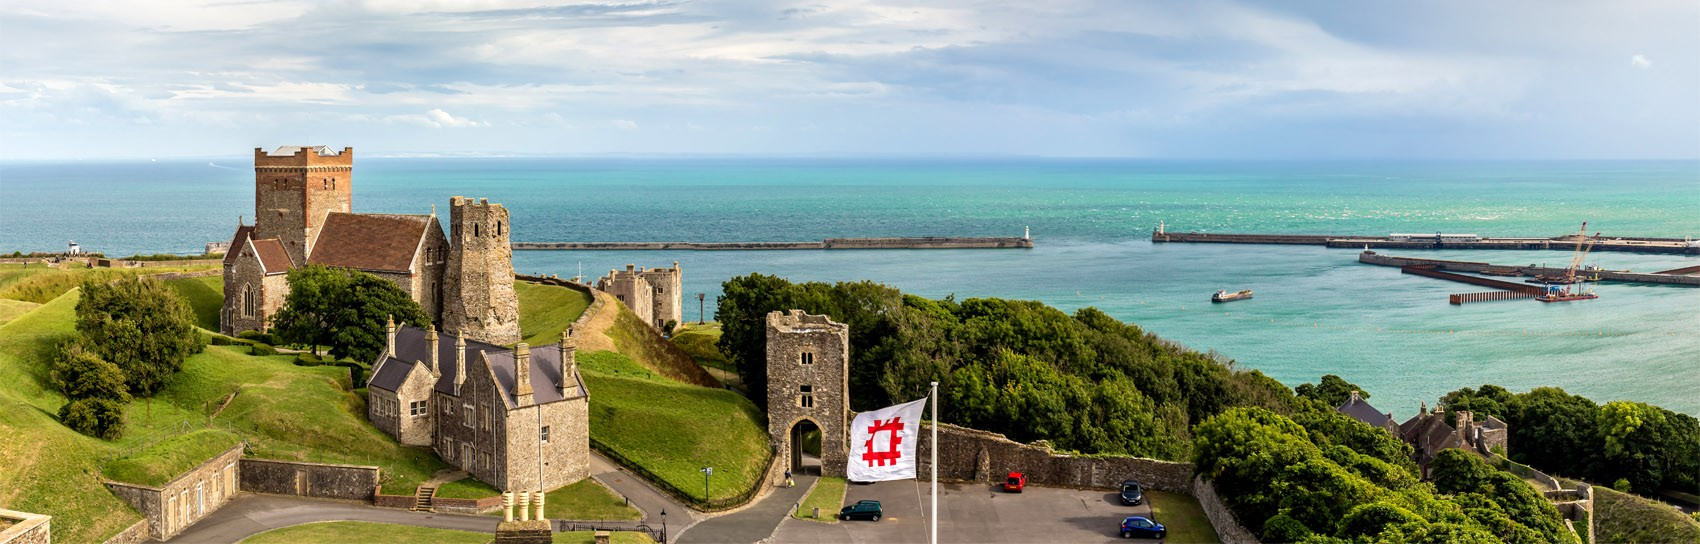 Dover Castle in Kent. Photograph by ALEXEY FEDORENKO